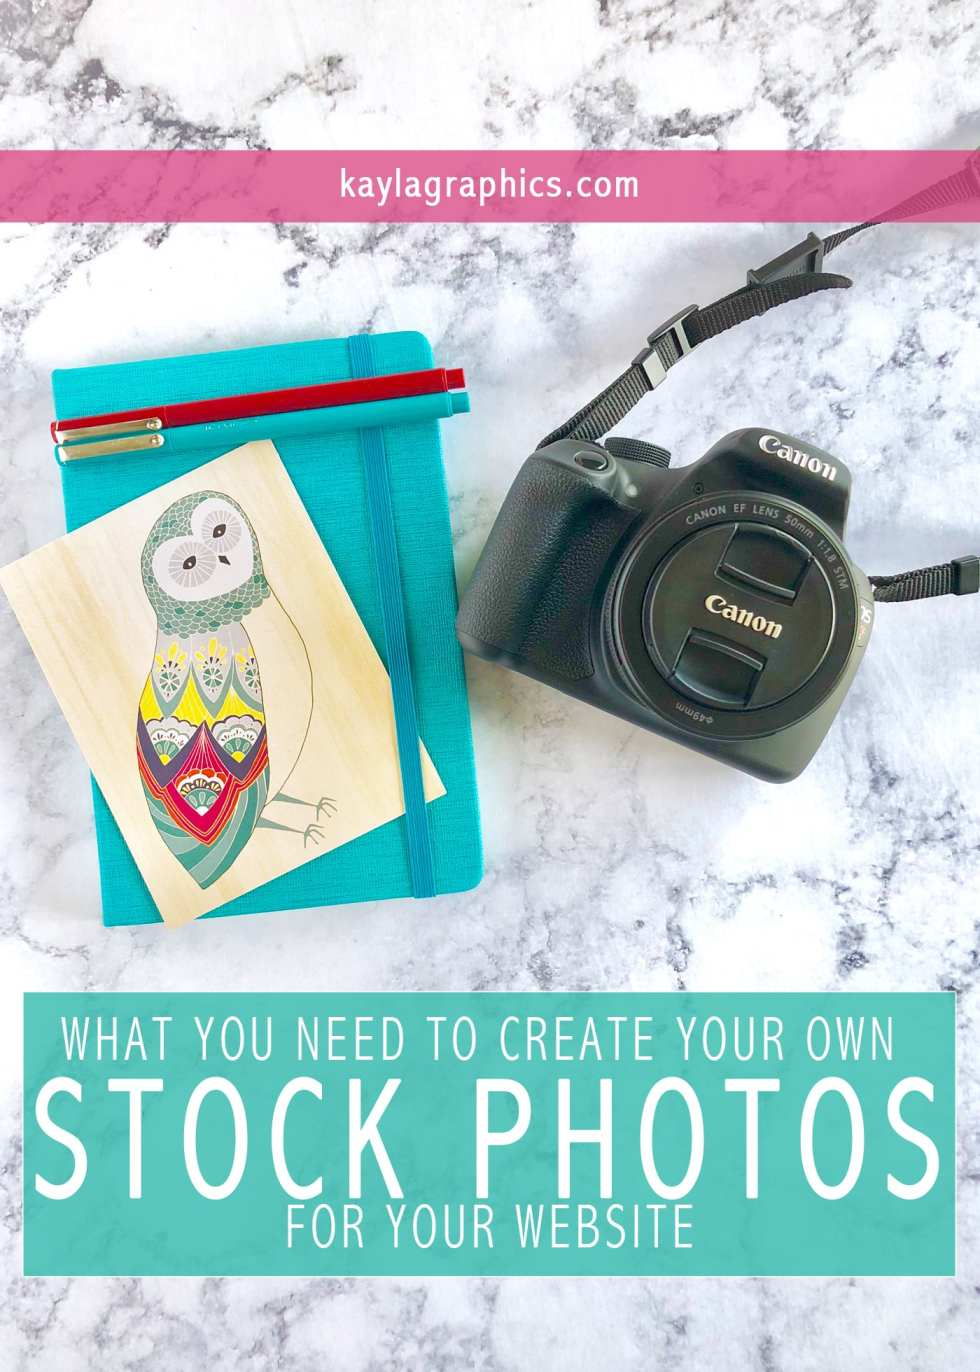 What You Need To Create Your Own Stock Photos For Your Website